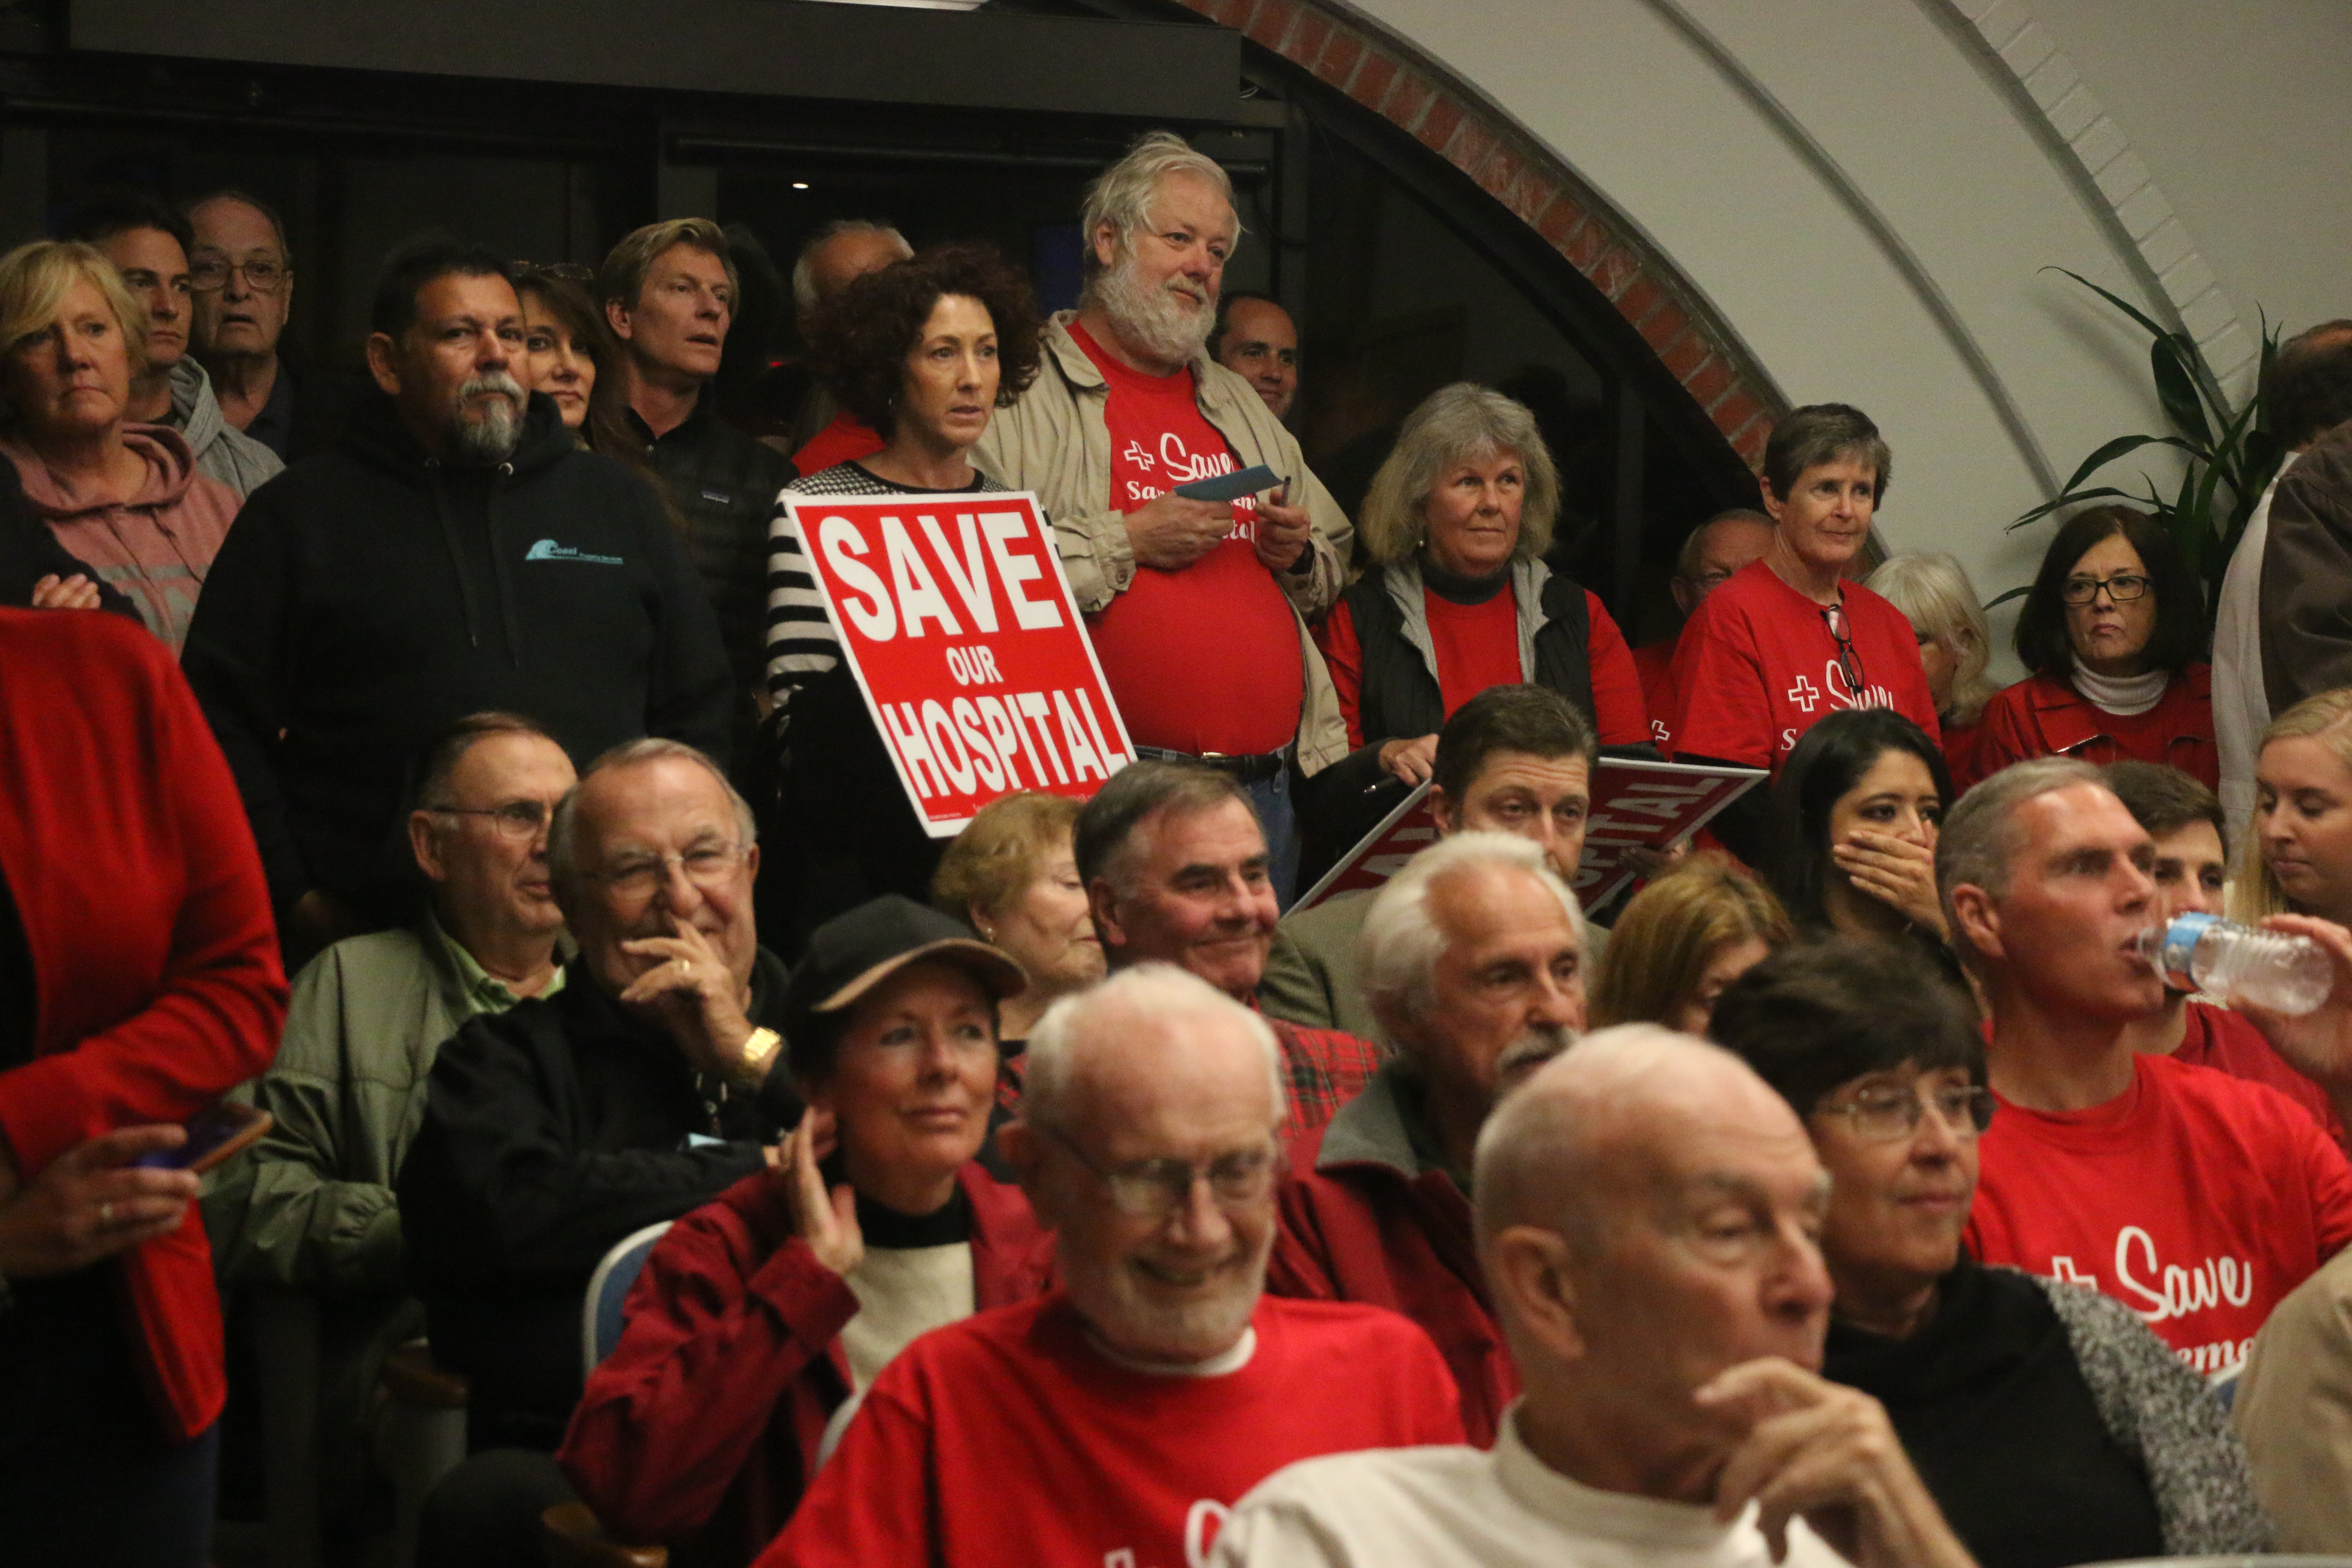 Members of the Save San Clemente Hospital Foundation arrived in droves with signs and wearing red shirts at the Tuesday night City Council meeting. Photo: Eric Heinz